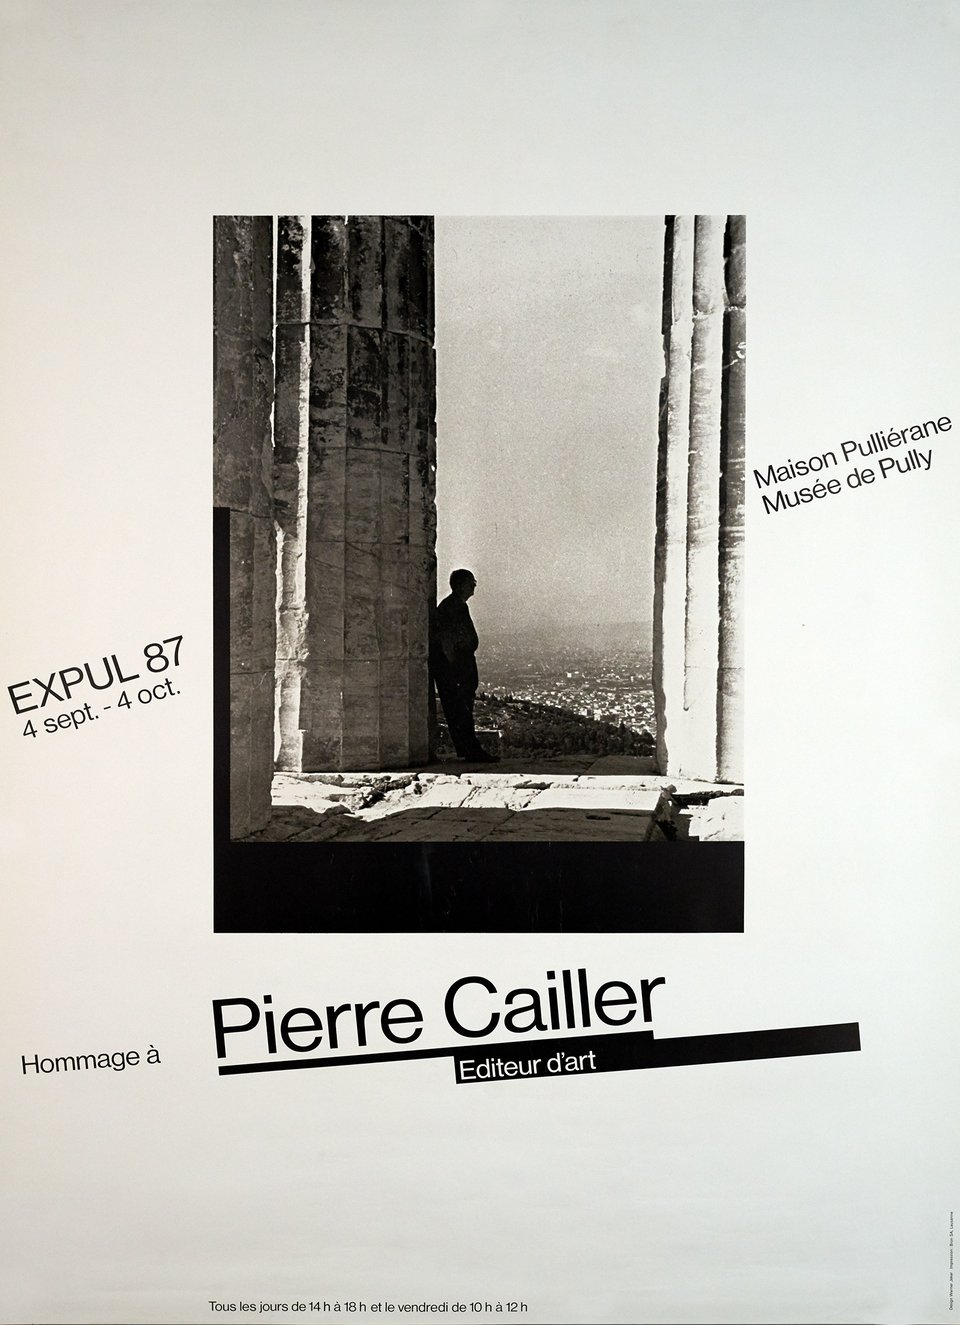 Pierre Cailler, Musée de Pully – Affiche ancienne – Werner JEKER – 1987